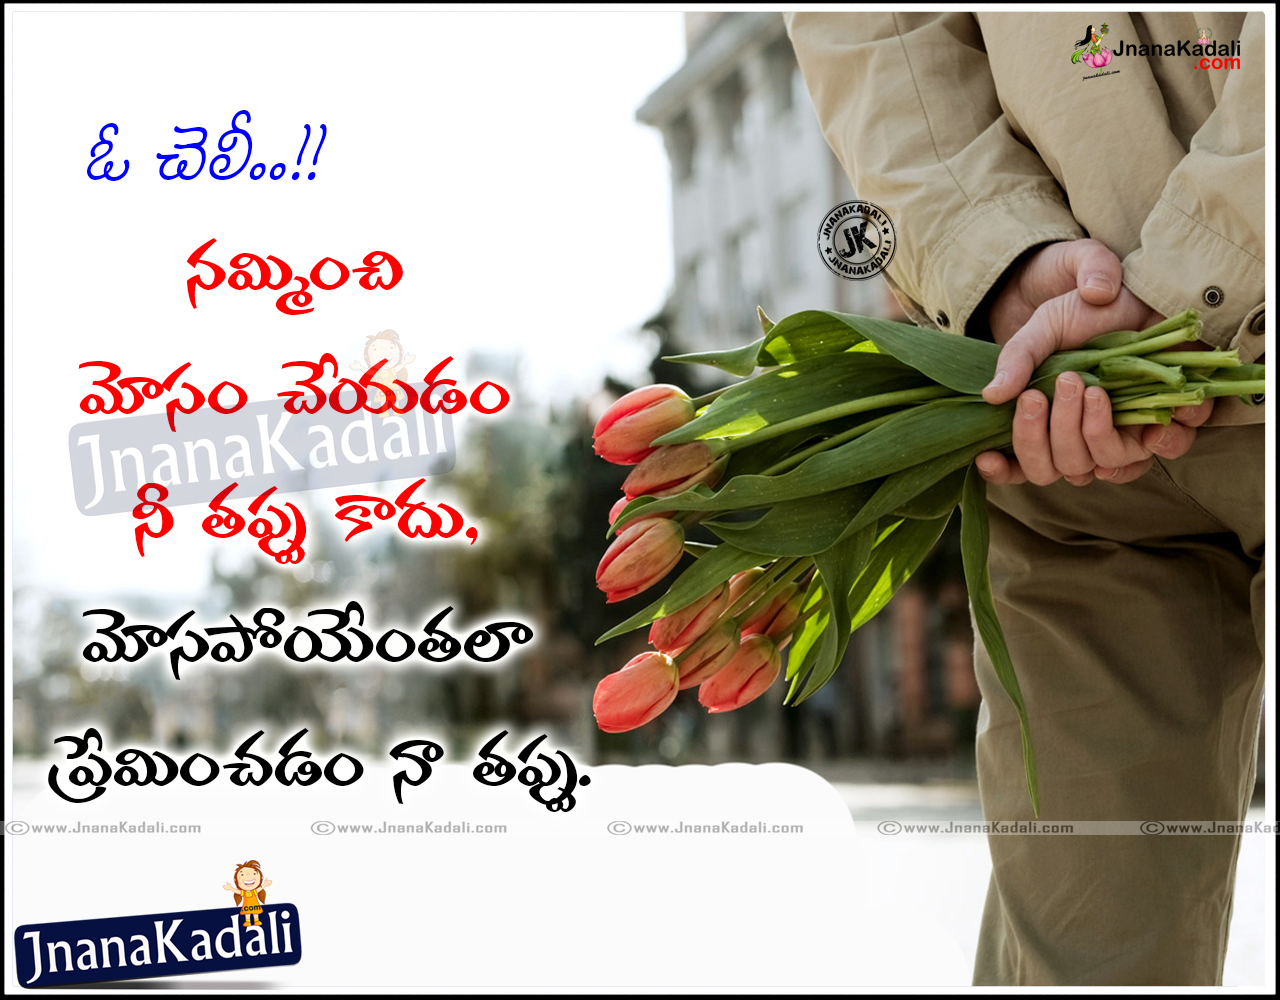 Love Failure Quotes Neglegence Quotes And Sad Love Quotes With Hd Images Jnana Kadali Com Telugu Quotes English Quotes Hindi Quotes Tamil Quotes Dharmasandehalu